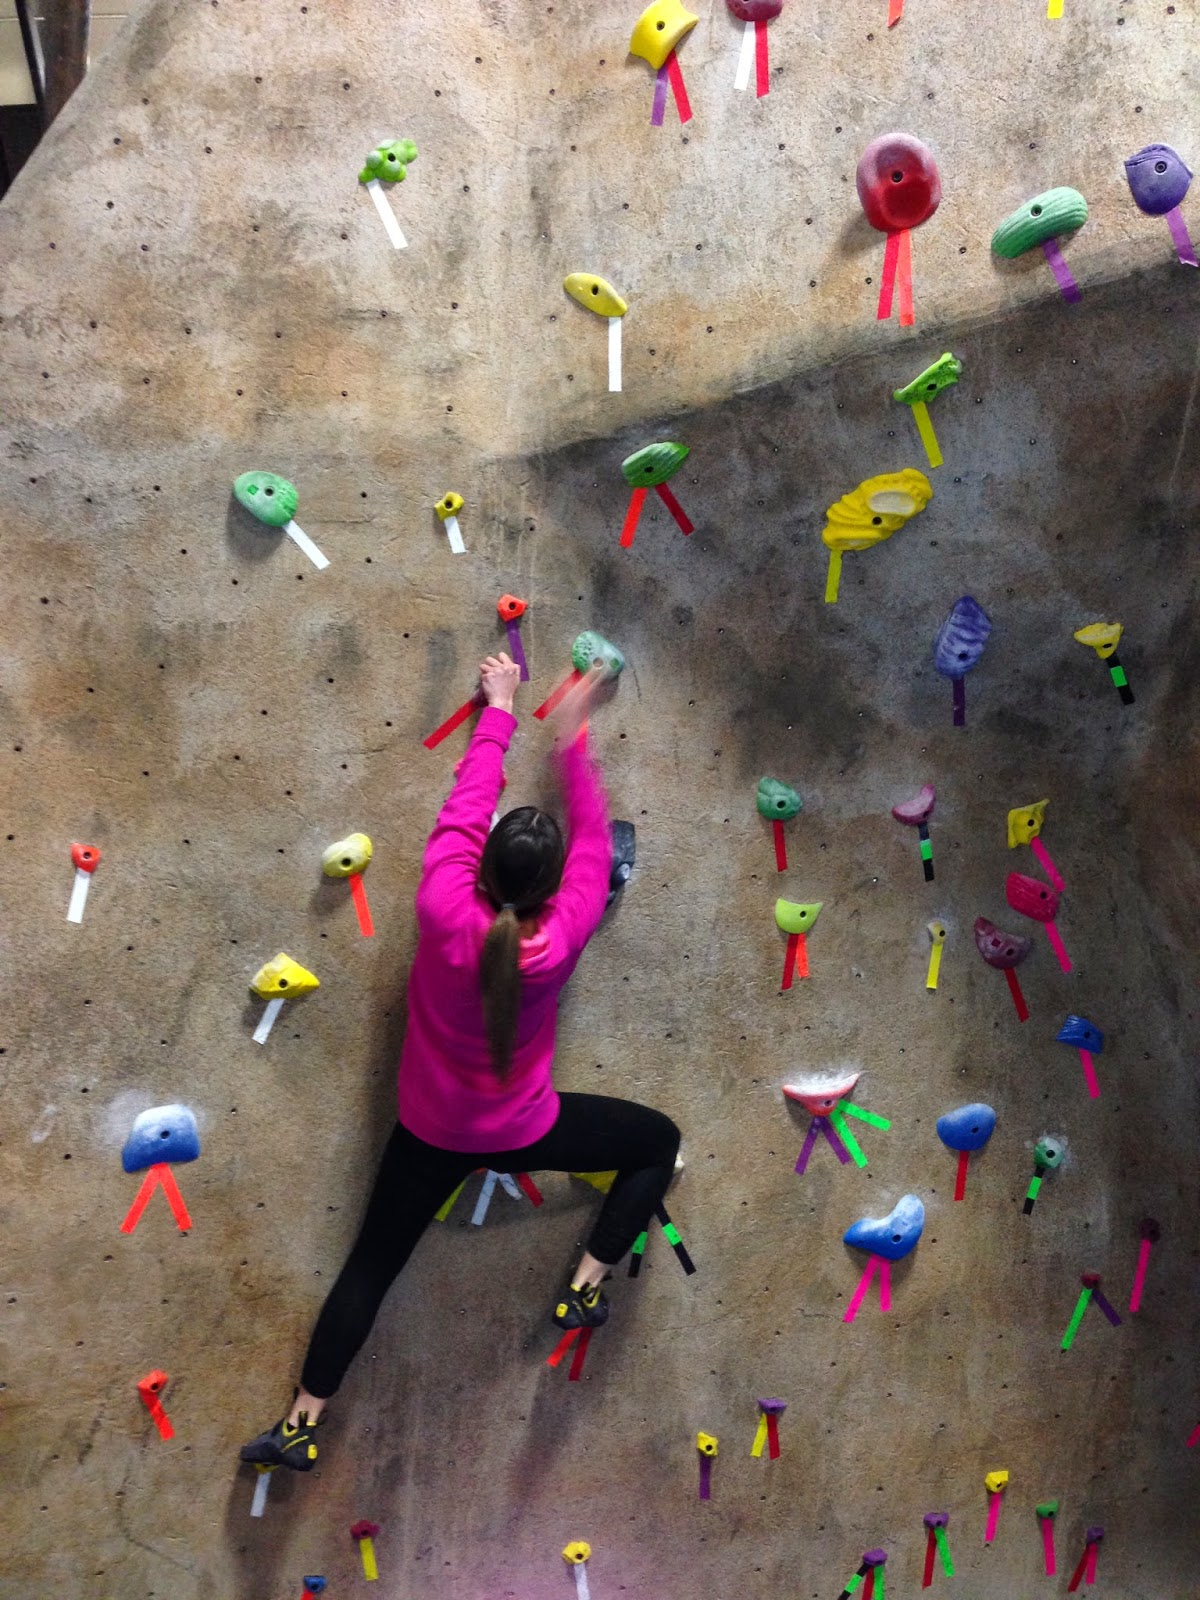 Indoor climbing at gravity vault